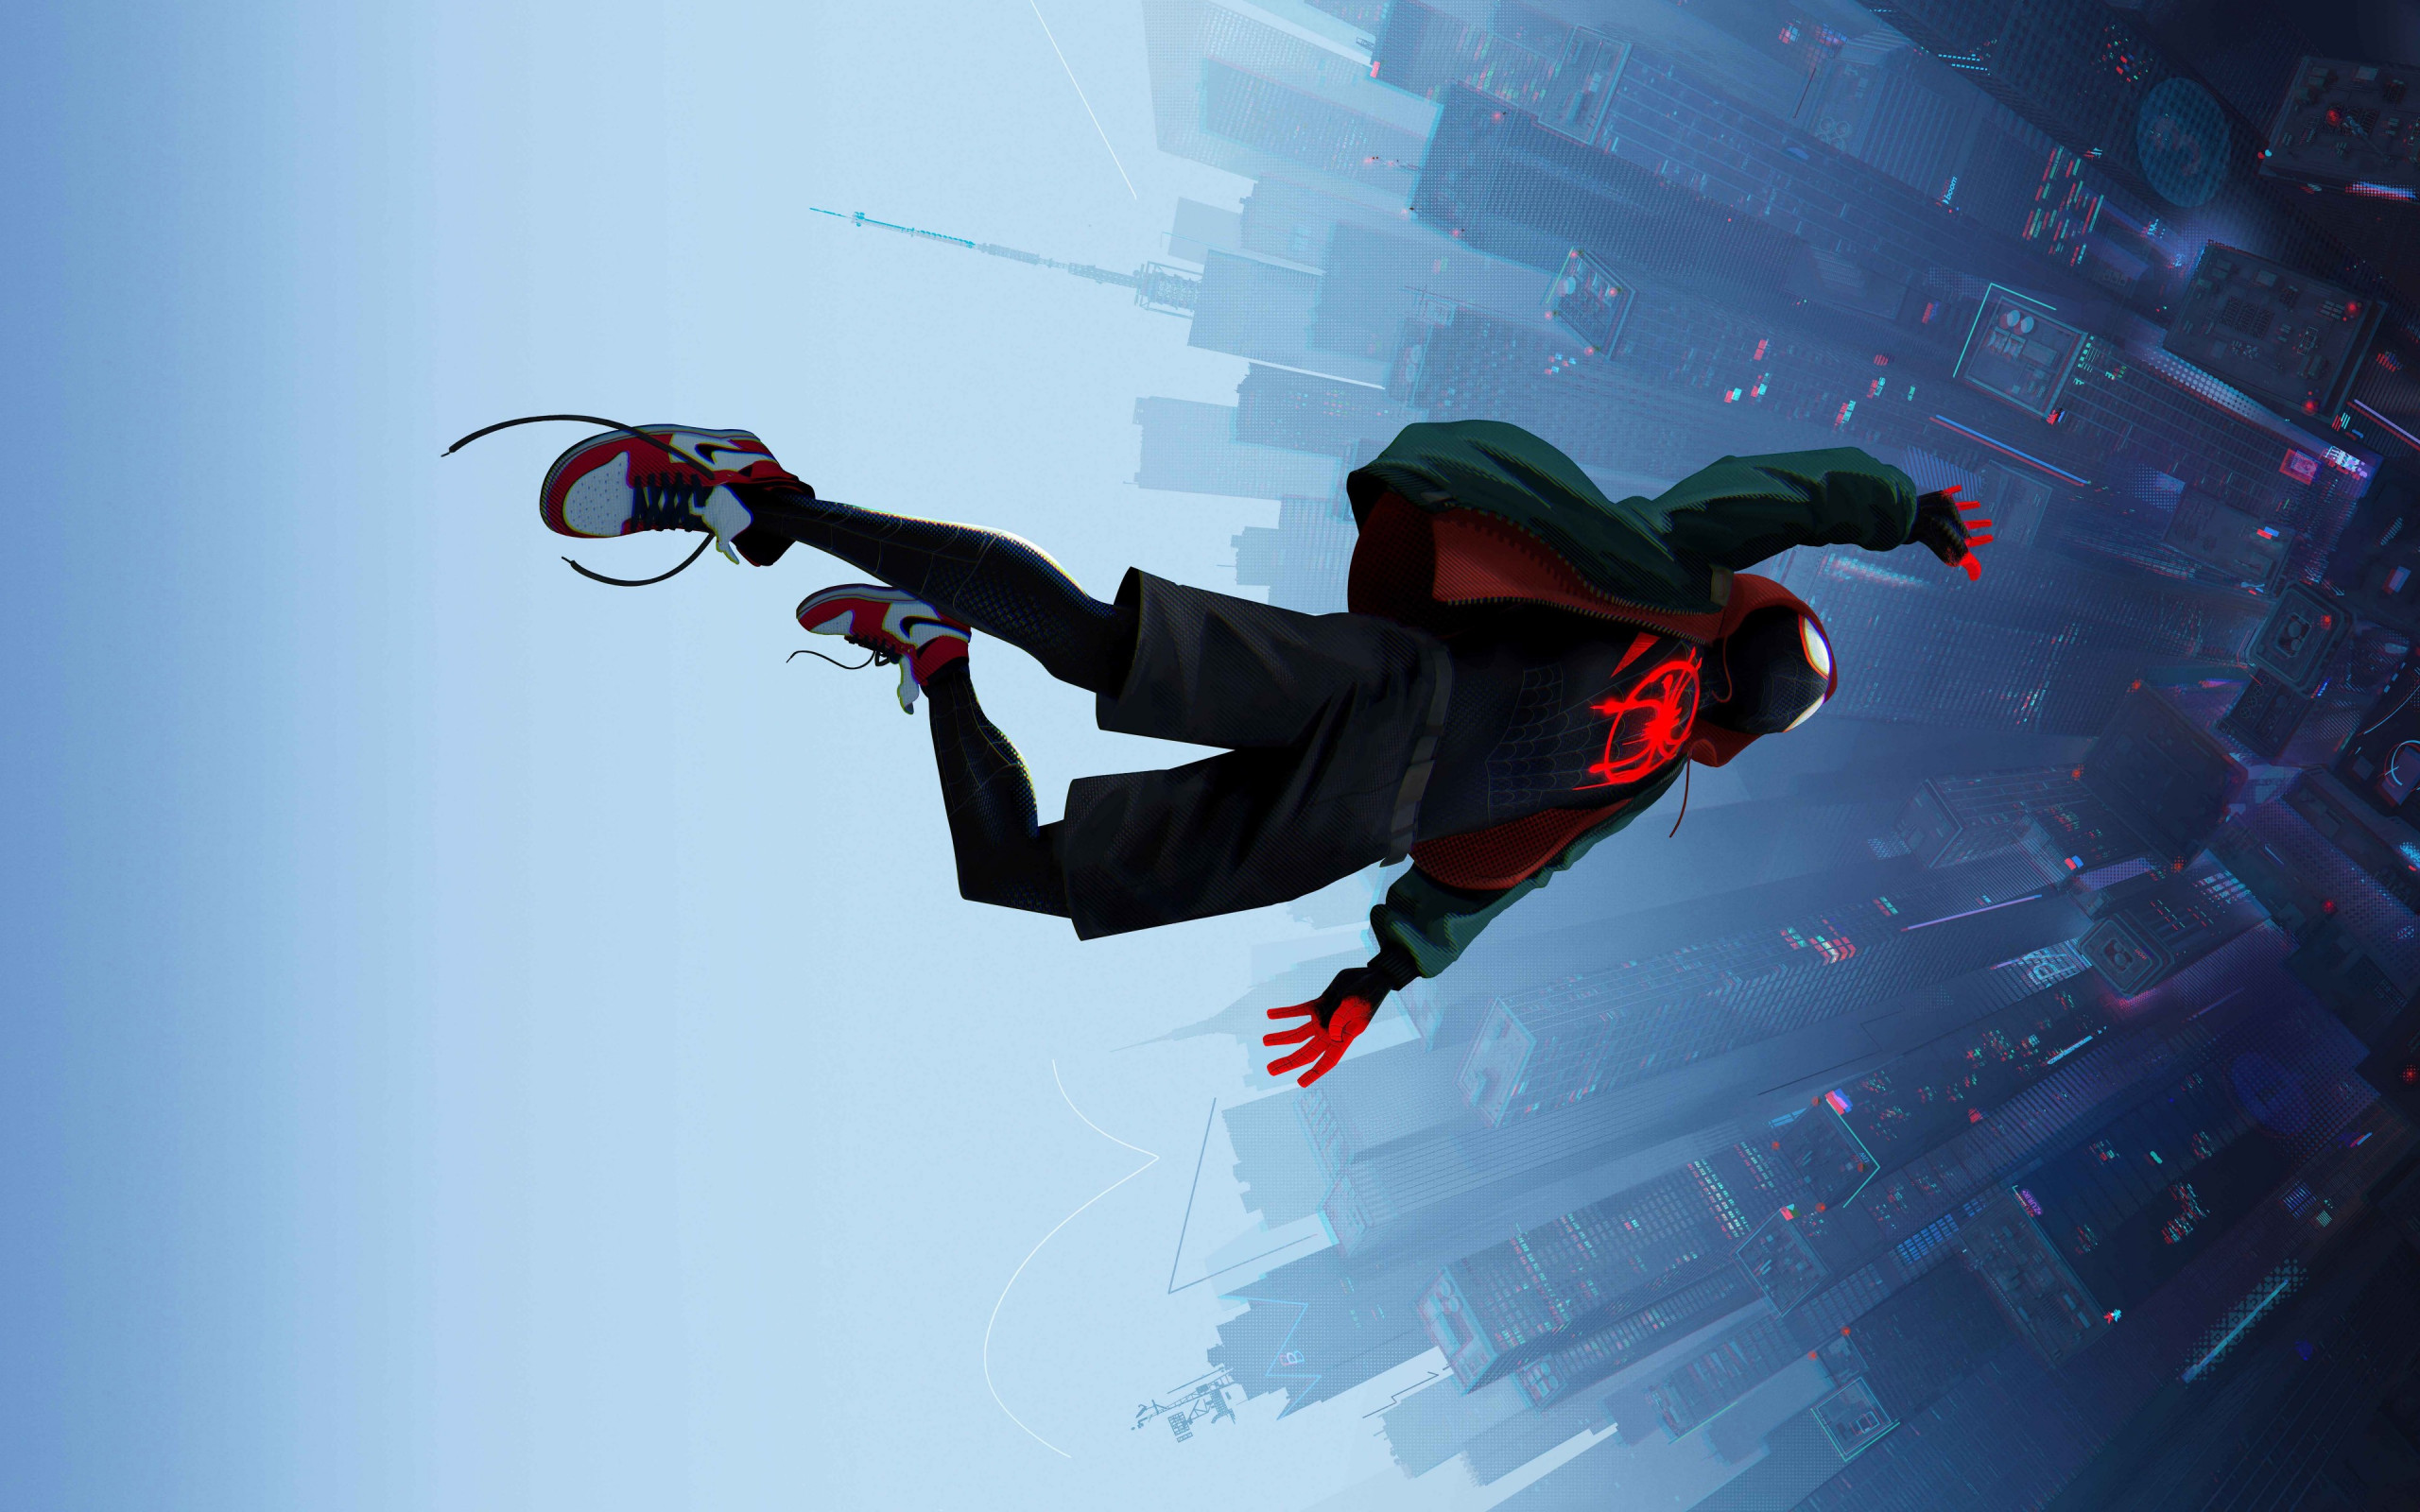 Spider Man: Into the Spider Verse 2018 wallpaper 2560x1600